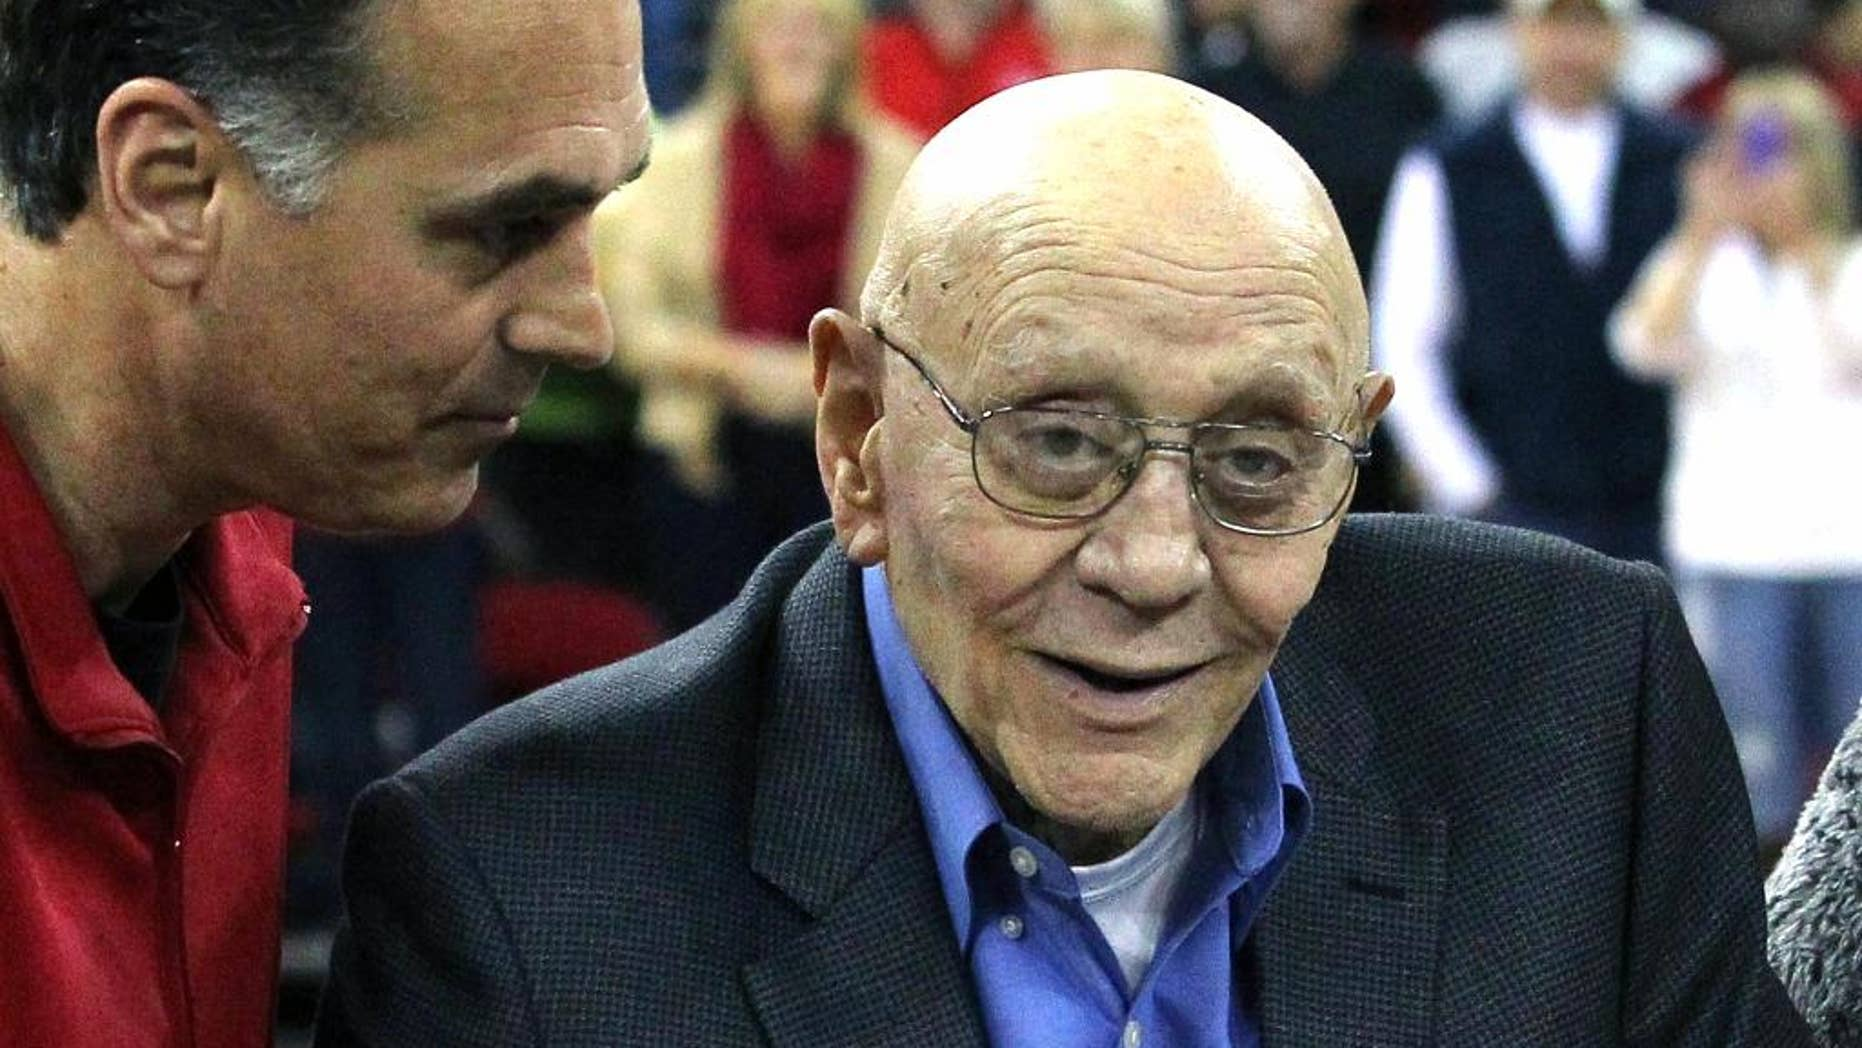 FILE - In this March 1, 2014, file photo, Jerry Tarkanian is escorted by his son, Danny, during halftime ceremonies honoring the former basketball coach at Fresno State University in Fresno, Calif. The Hall of Fame basketball coach is hospitalized in Las Vegas, where his son says he's being treated for pneumonia. (AP Photo/Gary Kazanjian, File)